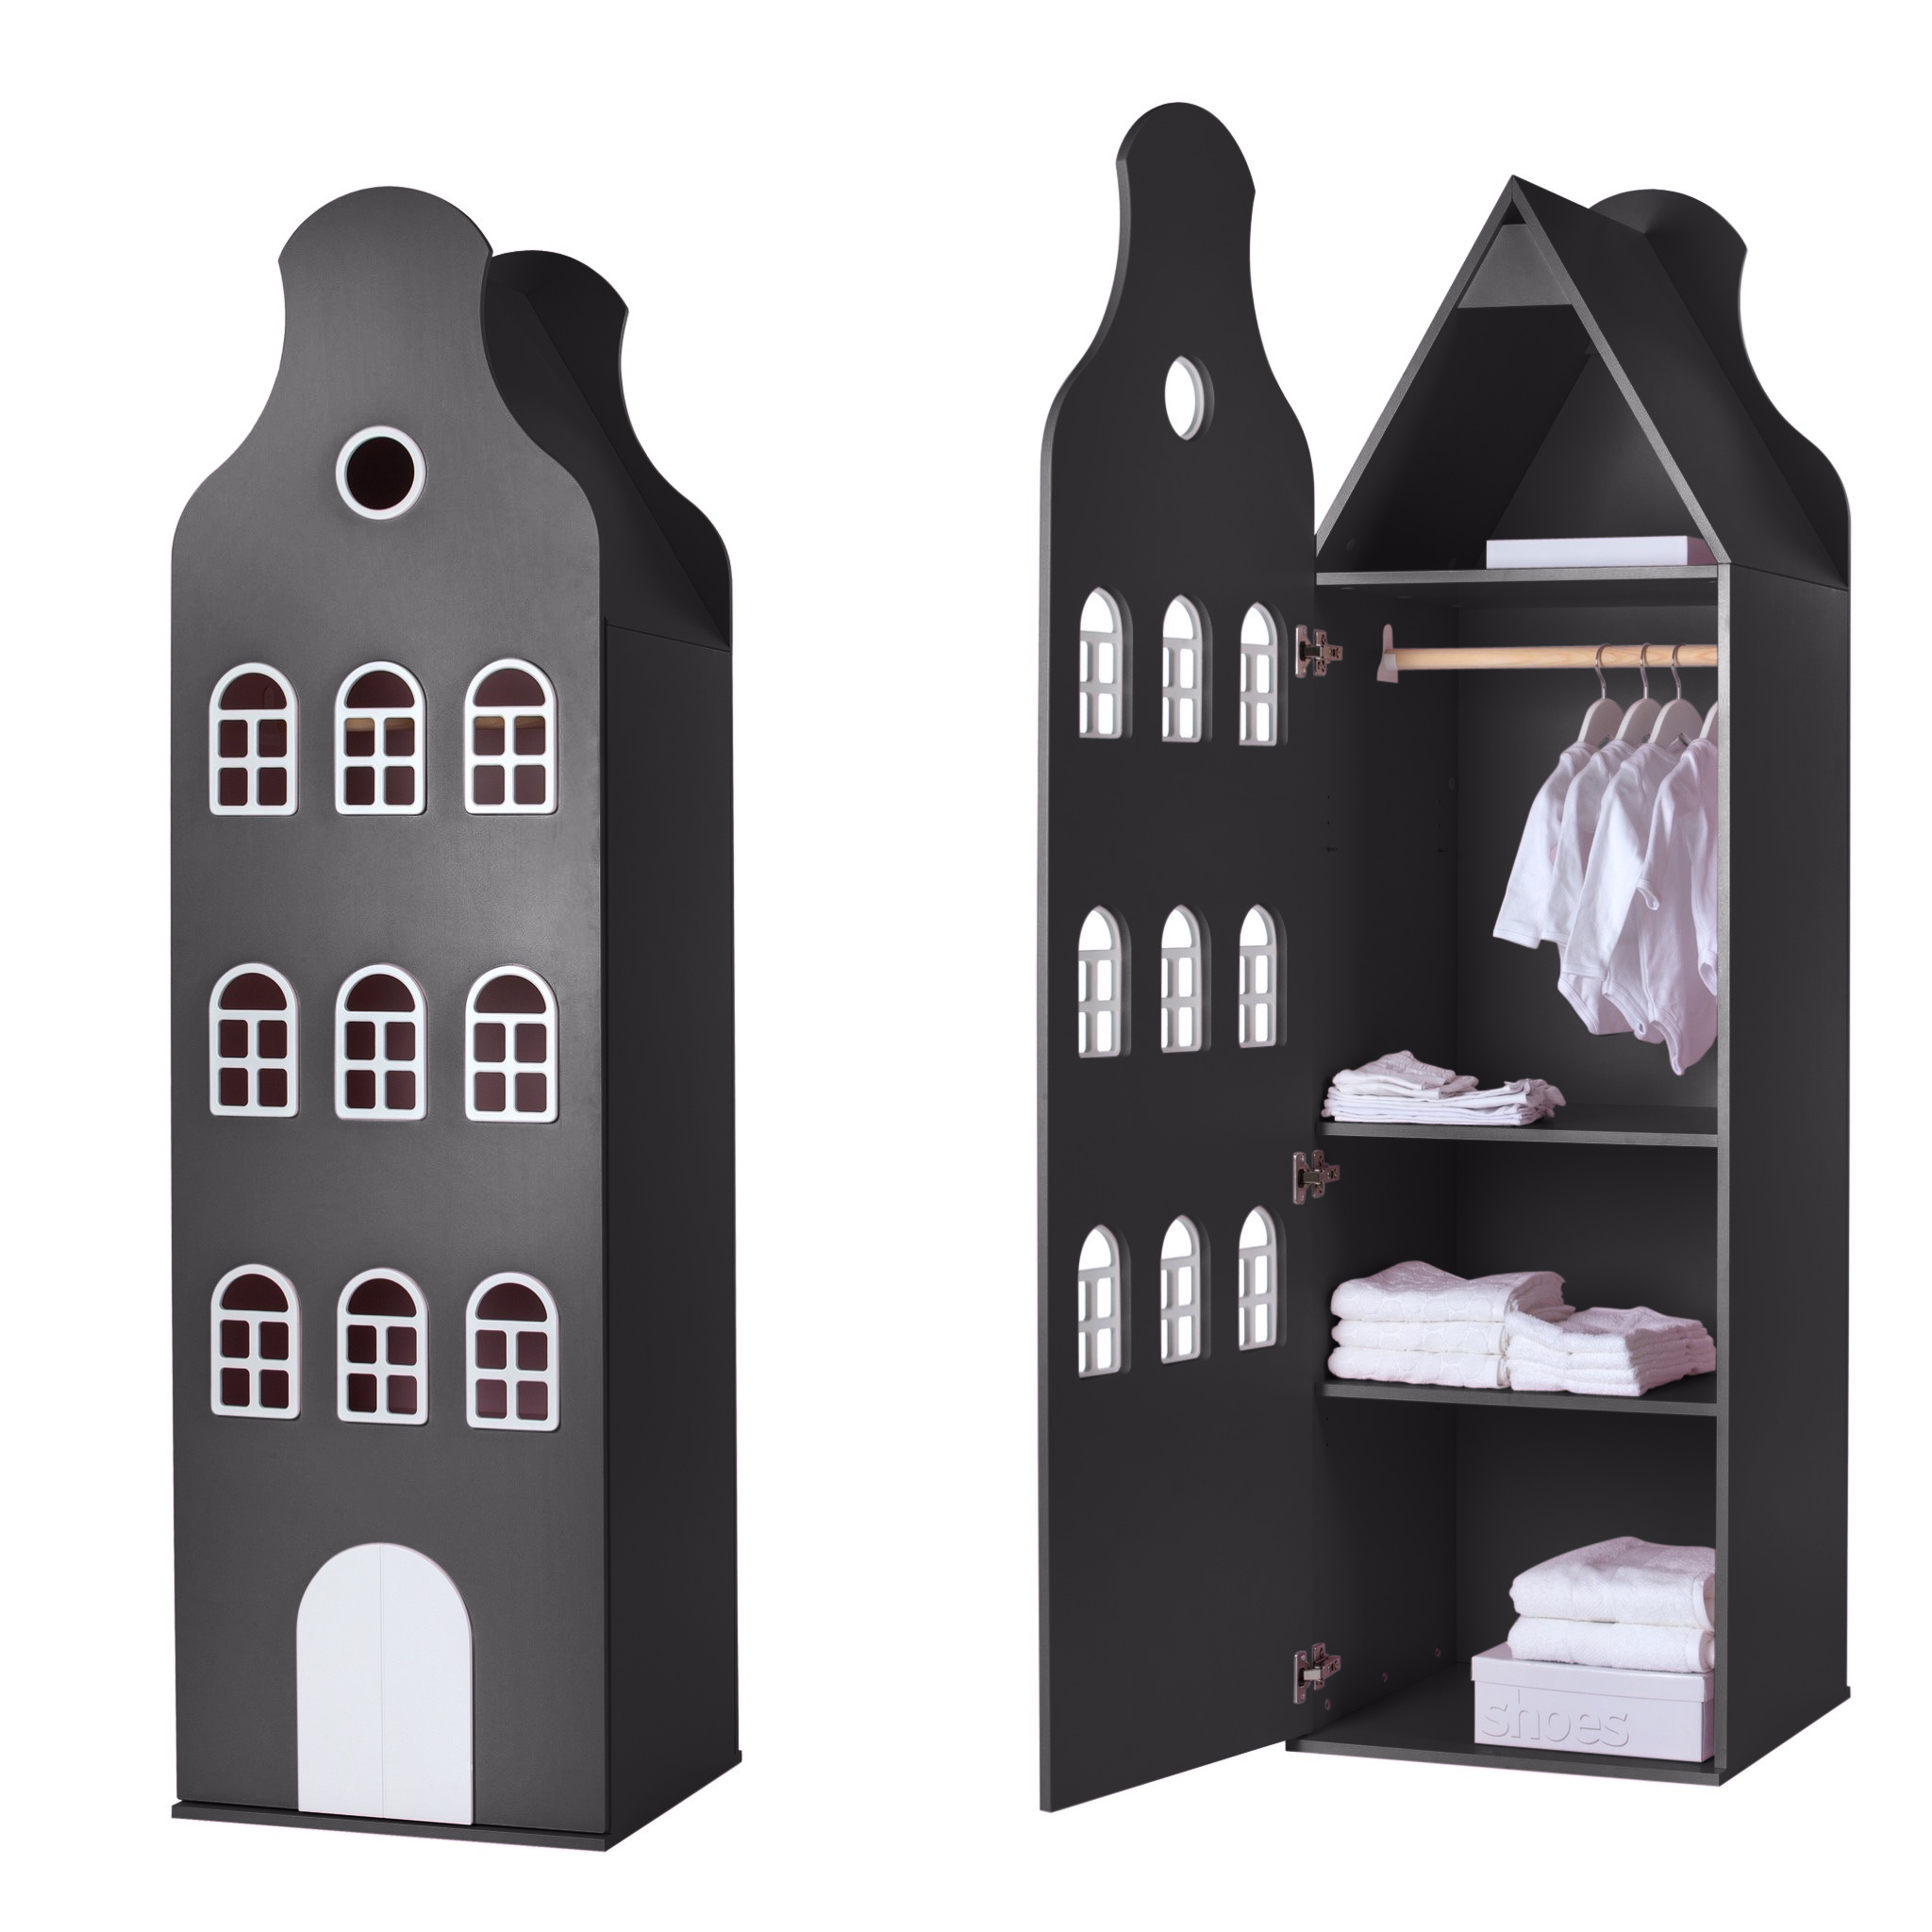 Cabinet Amsterdam Bellgable, XL 216/60/60 cm. All colors.-8